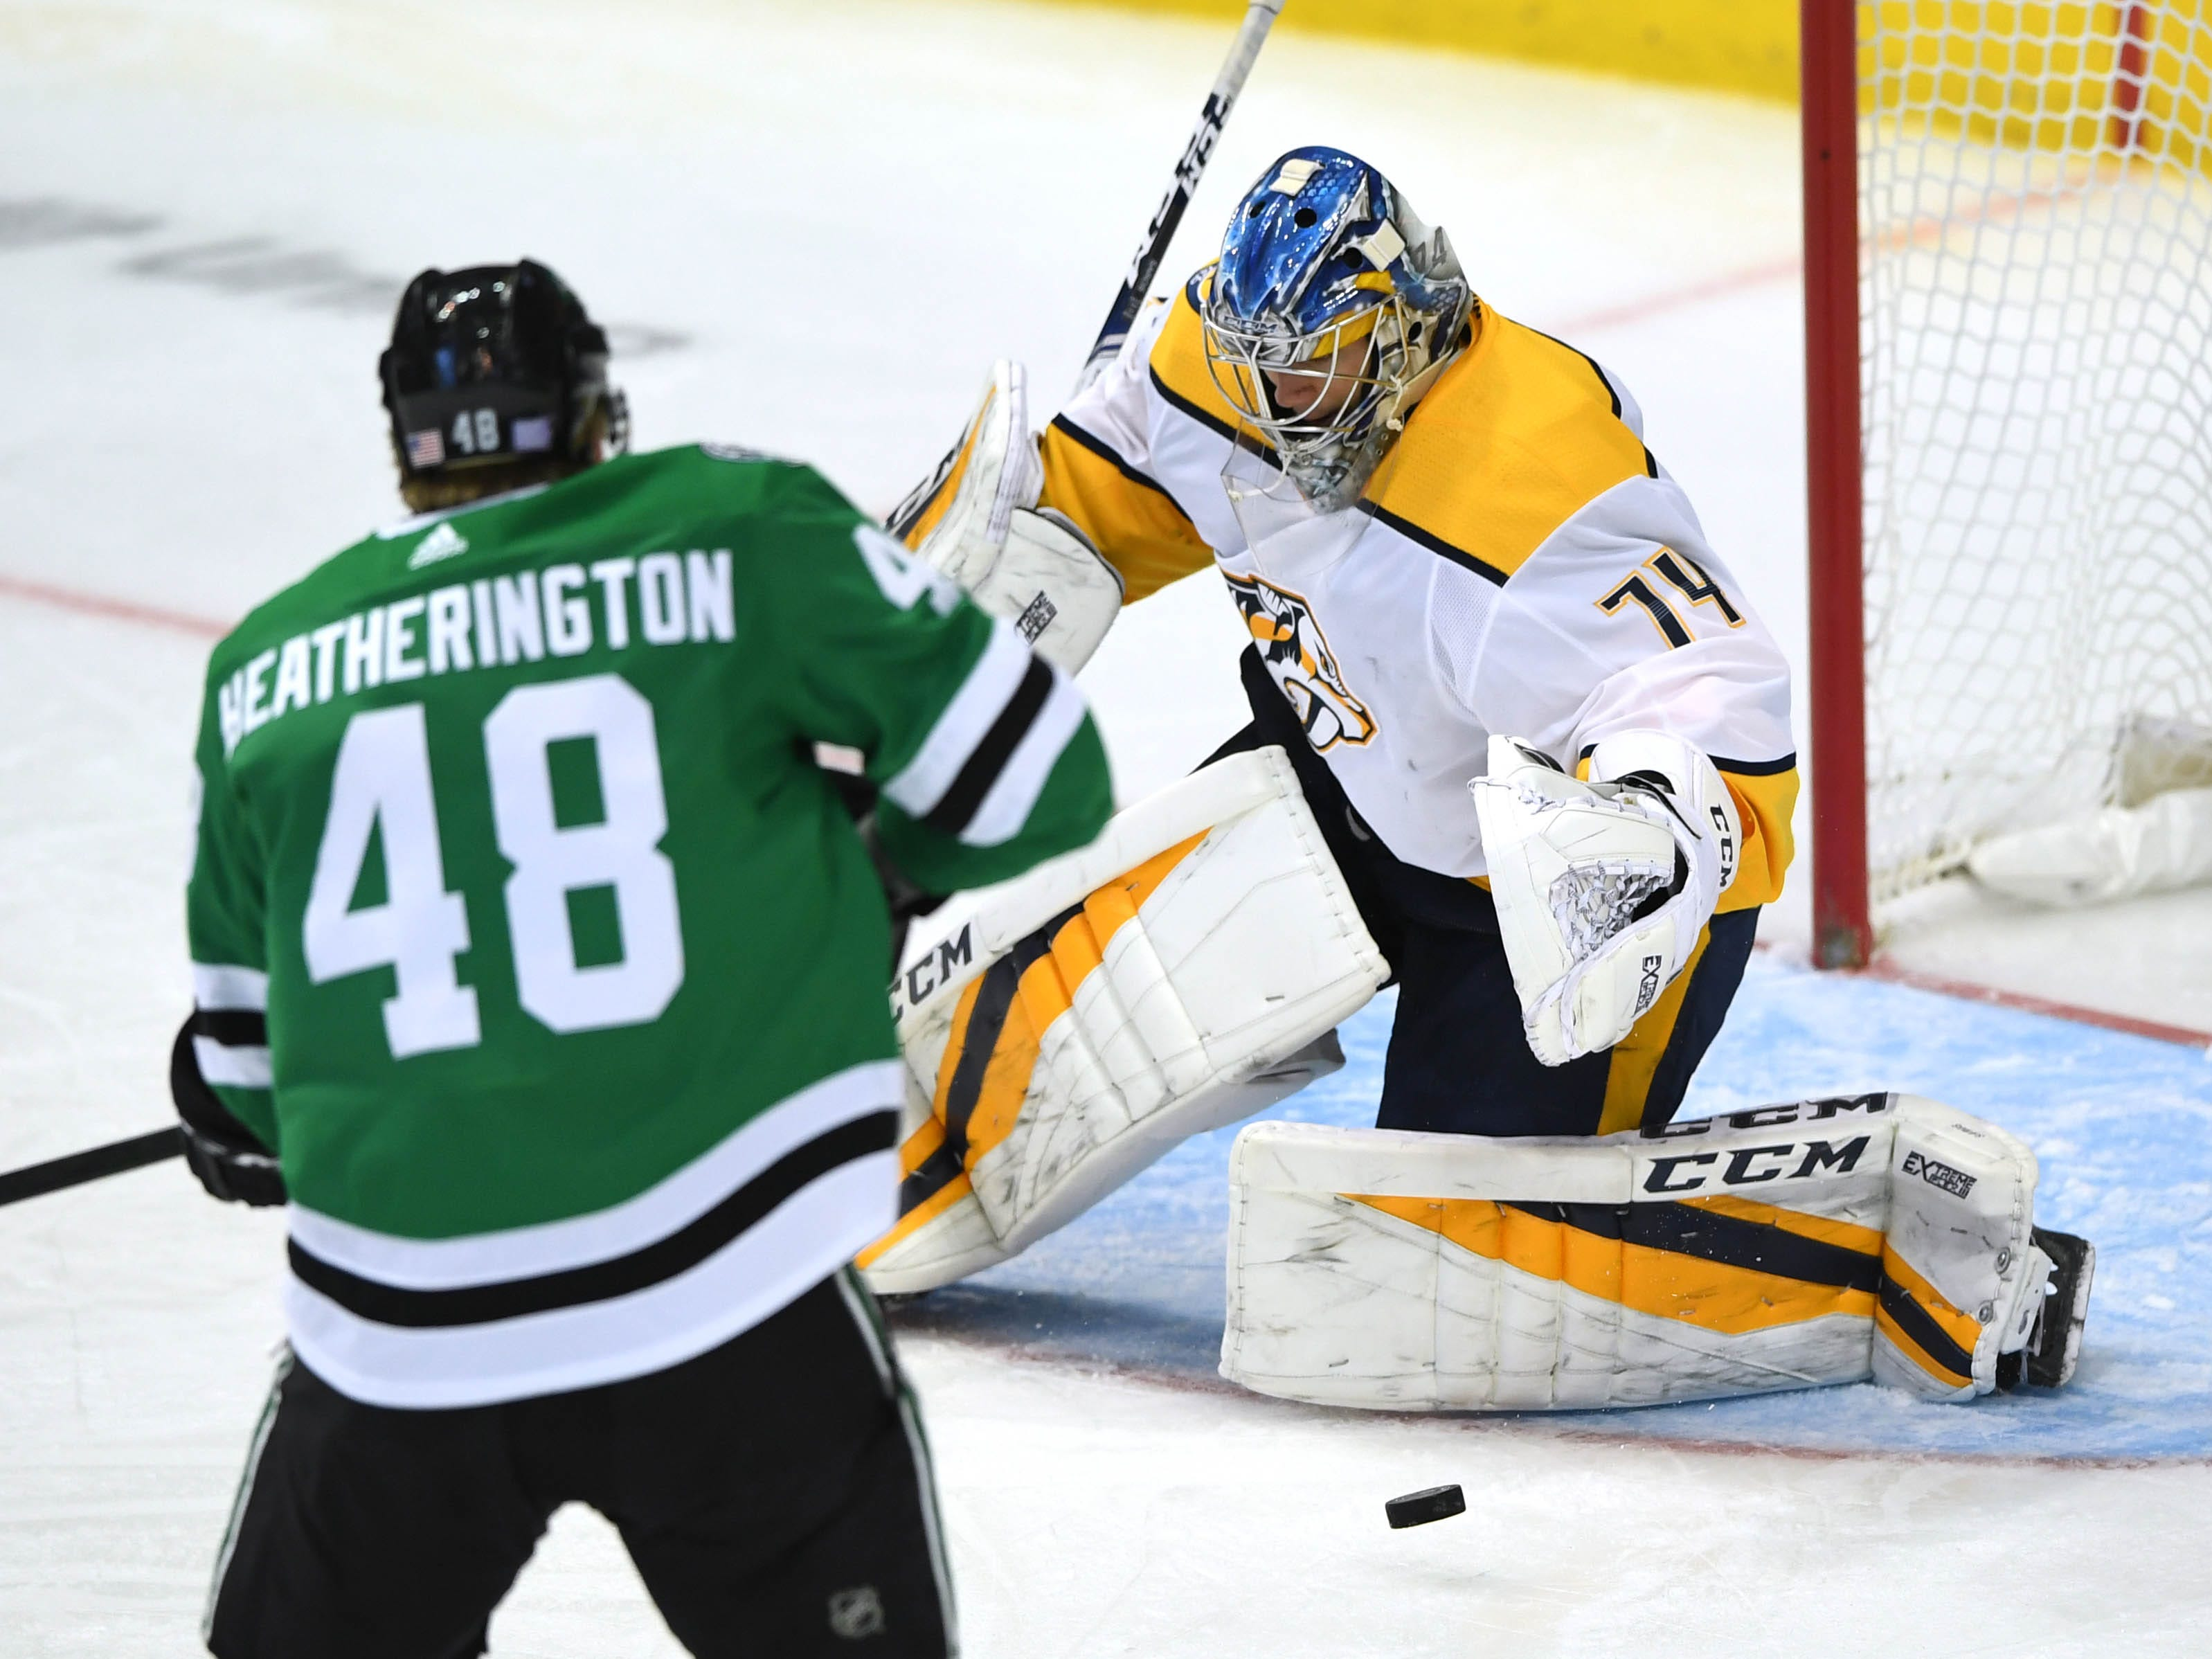 Nashville Predators goaltender Juuse Saros (74) makes a save as Dallas Stars defenseman Dillon Heatherington (48) looks on during the third period at American Airlines Center.